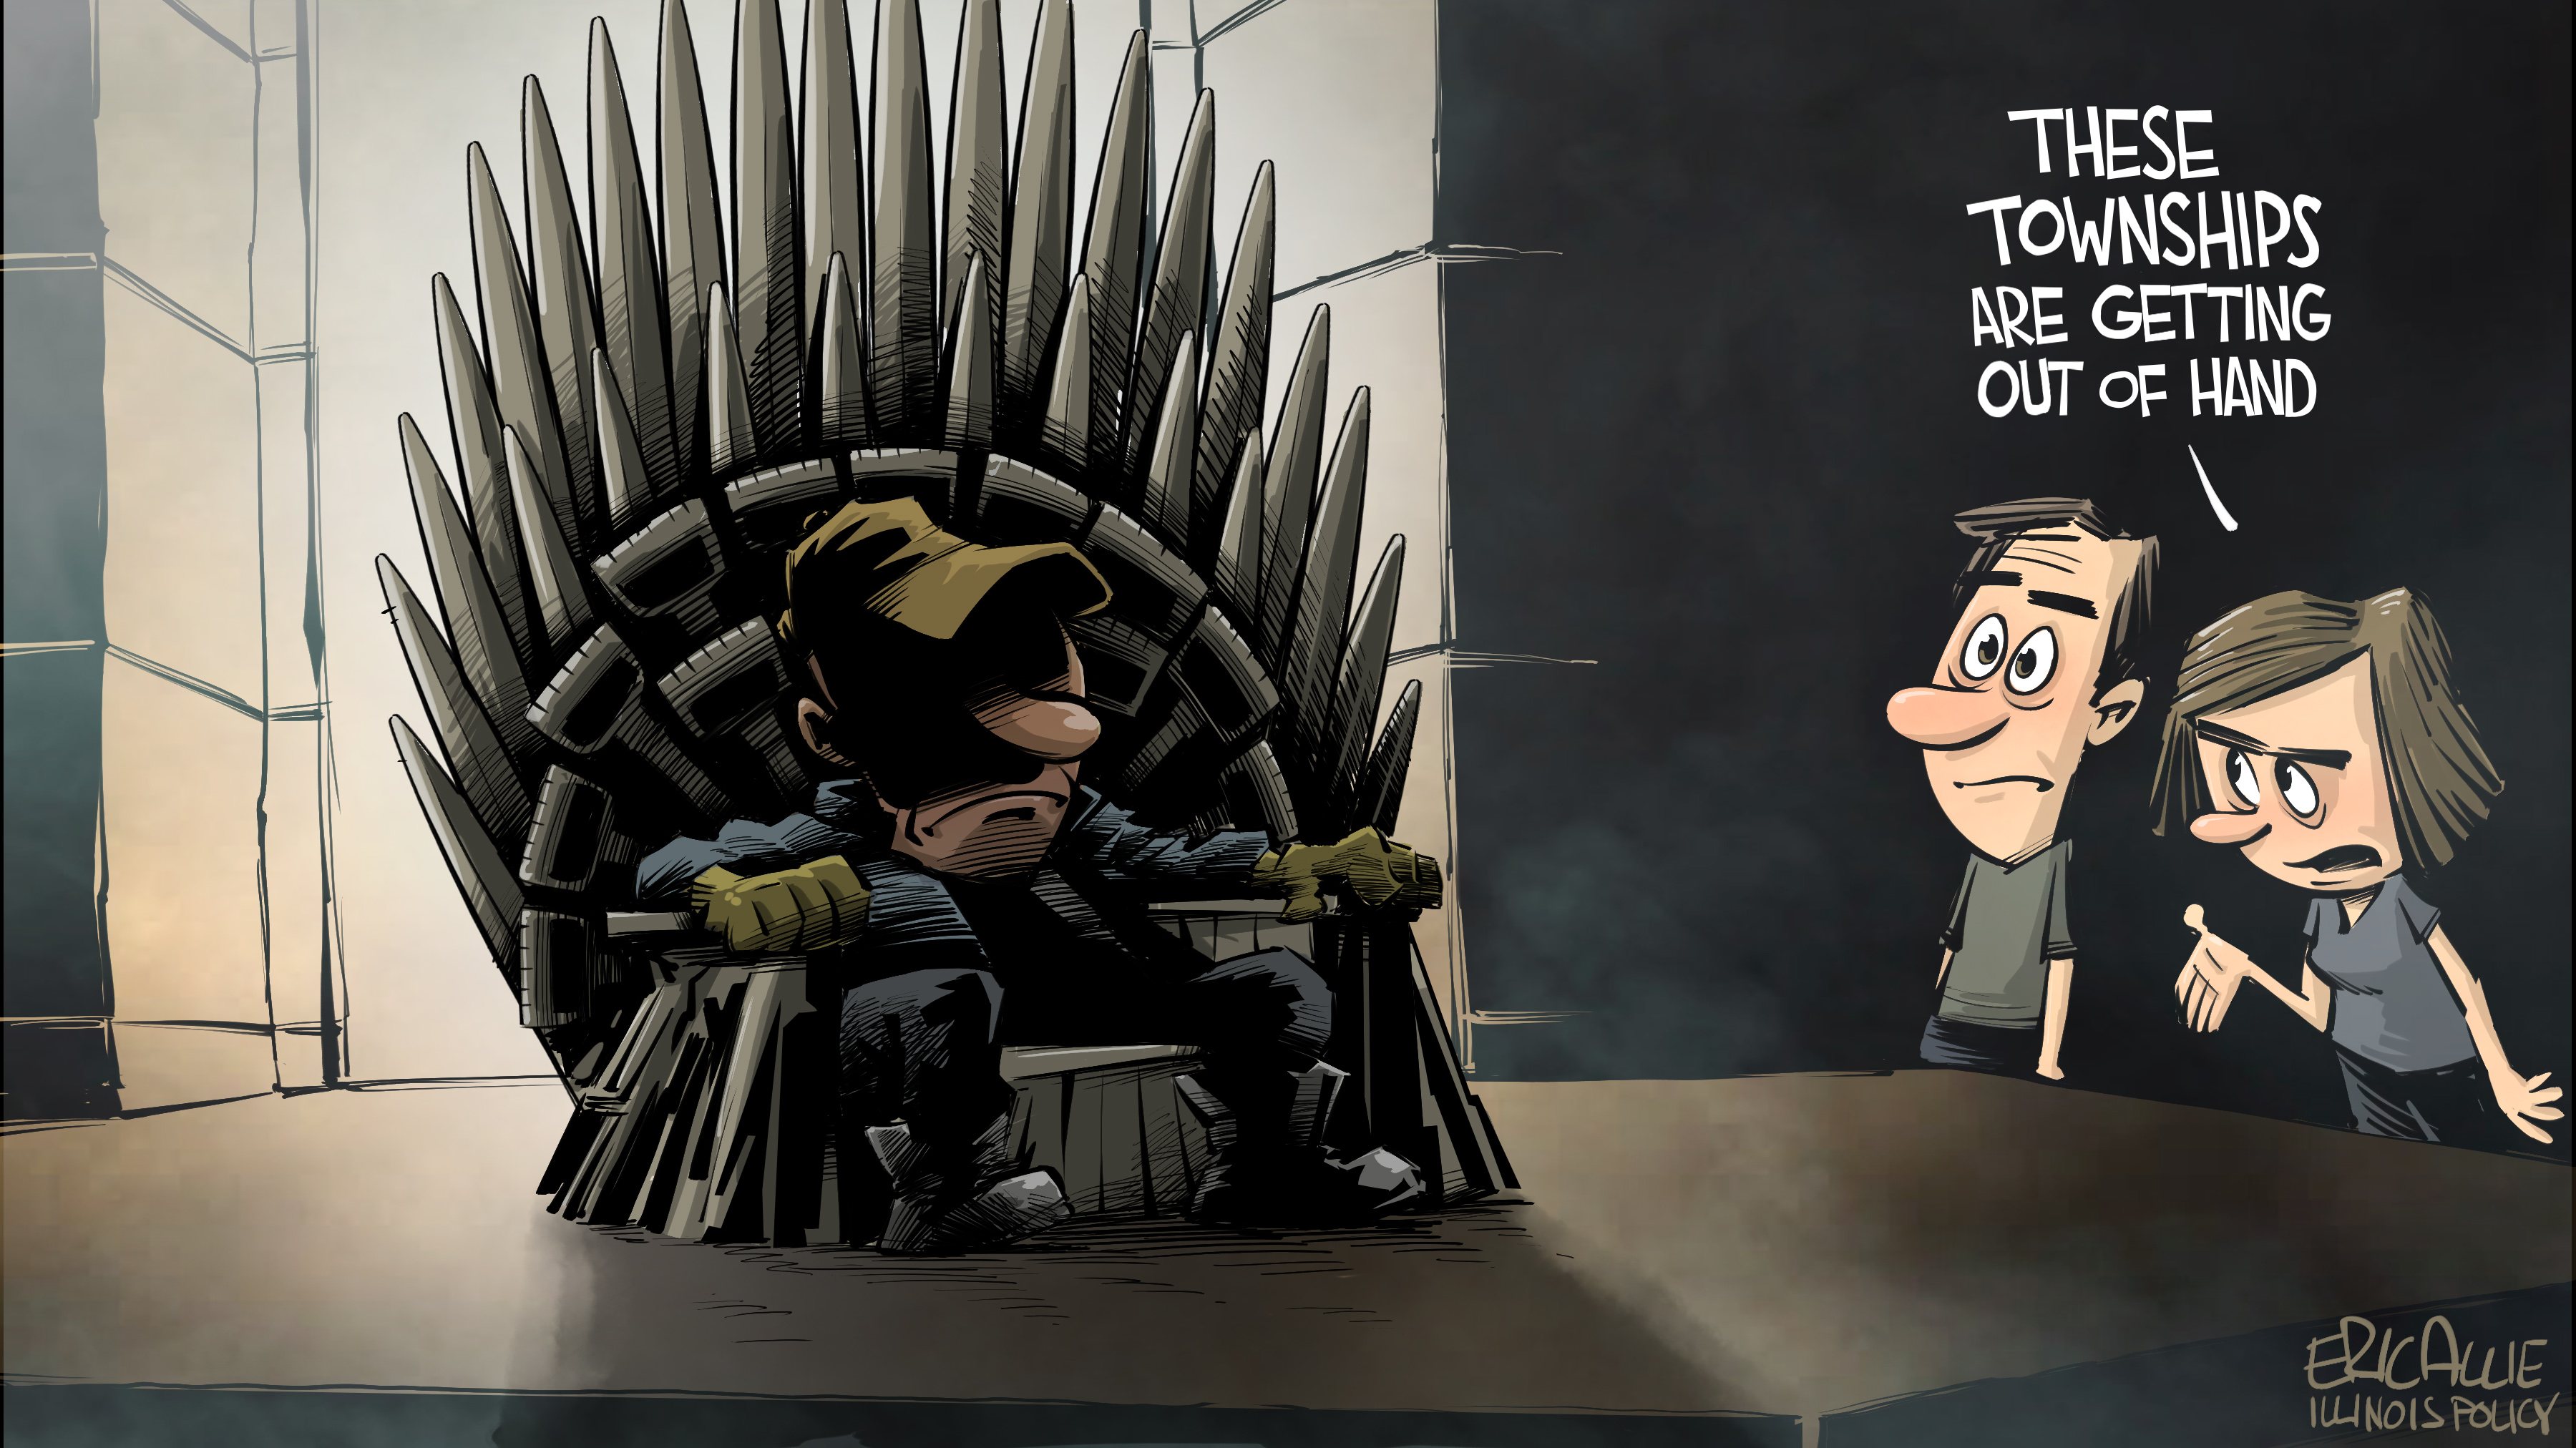 Illinois township government game of thrones